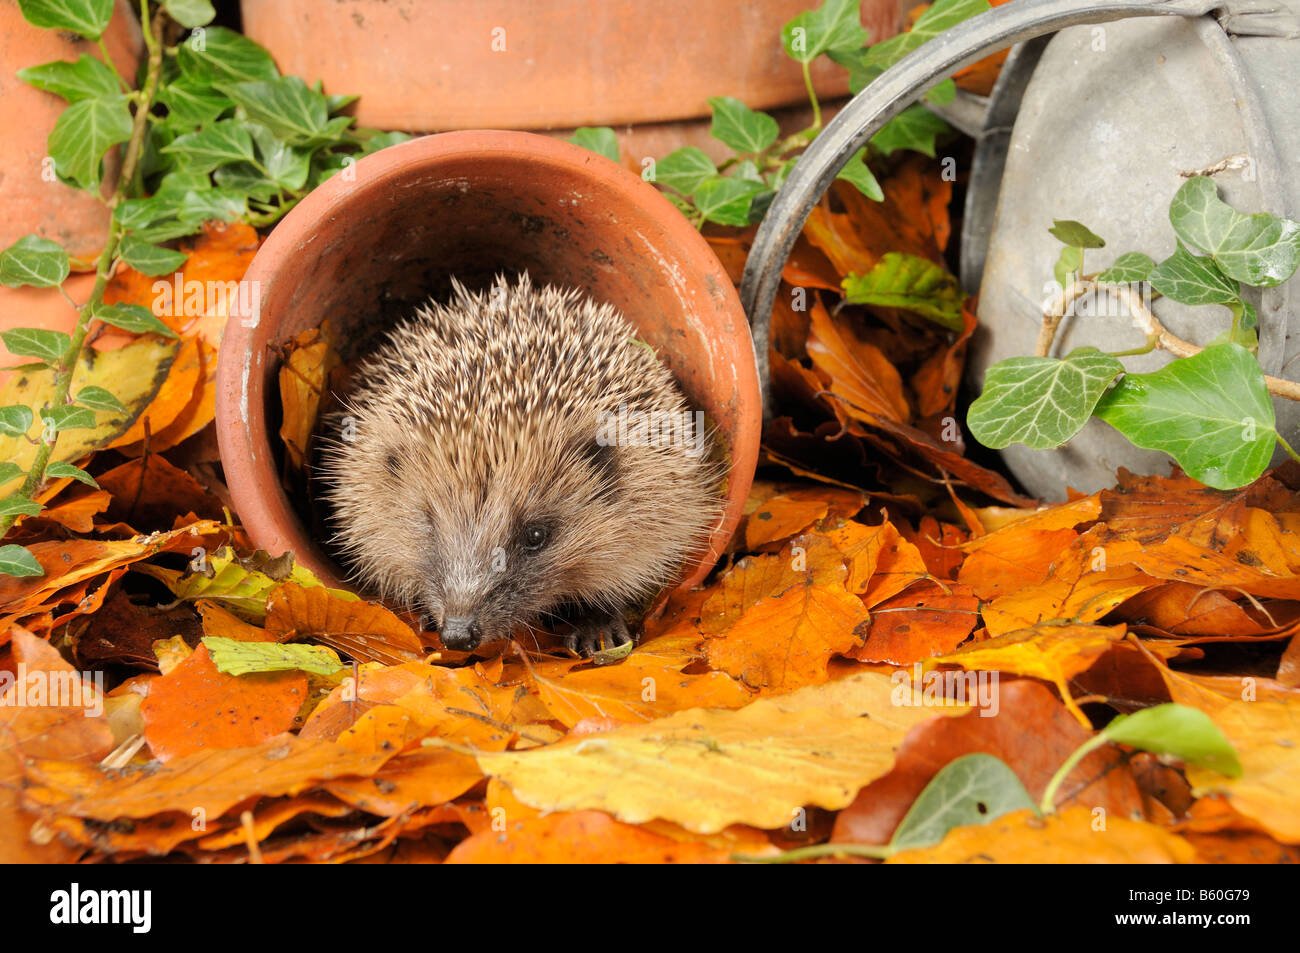 Hedgehog erinaceus europaeus foraging for food in urban garden amongst terracotta pots and autumn leaves UK - Stock Image